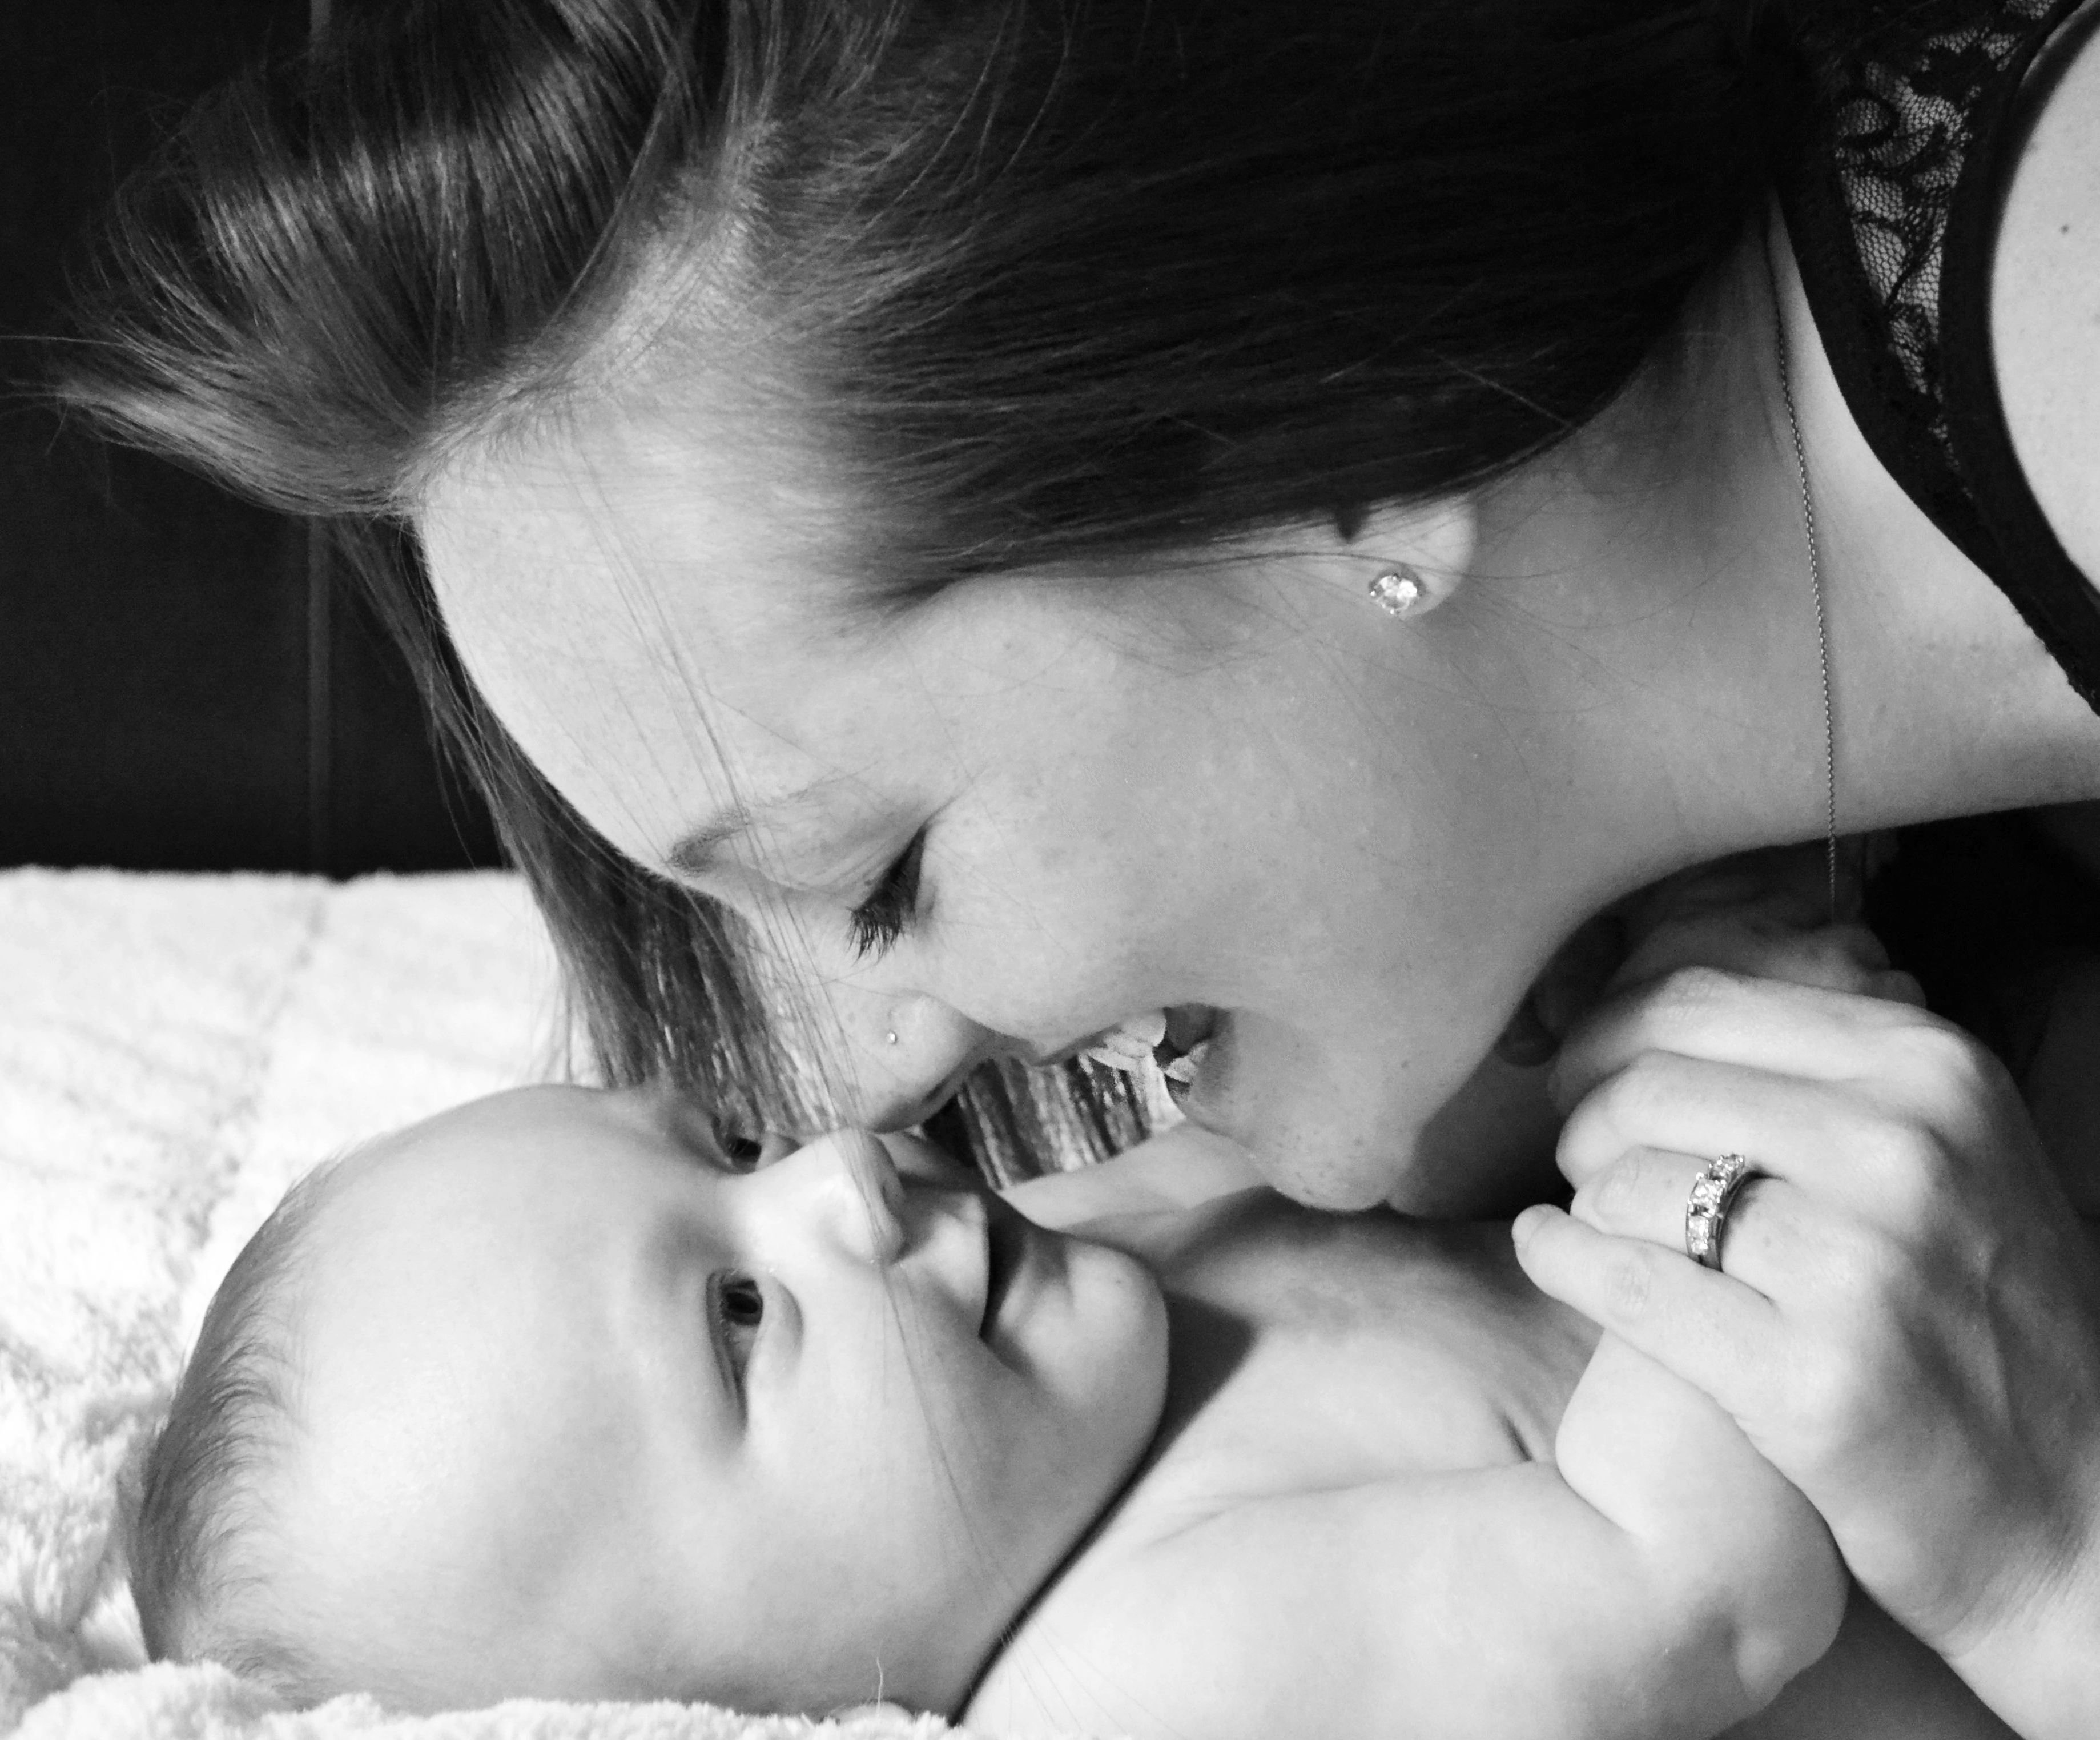 10 Most Popular Mommy And Baby Picture Ideas mommy me photoshoot 4 months old baby and mommy photography 1 2020